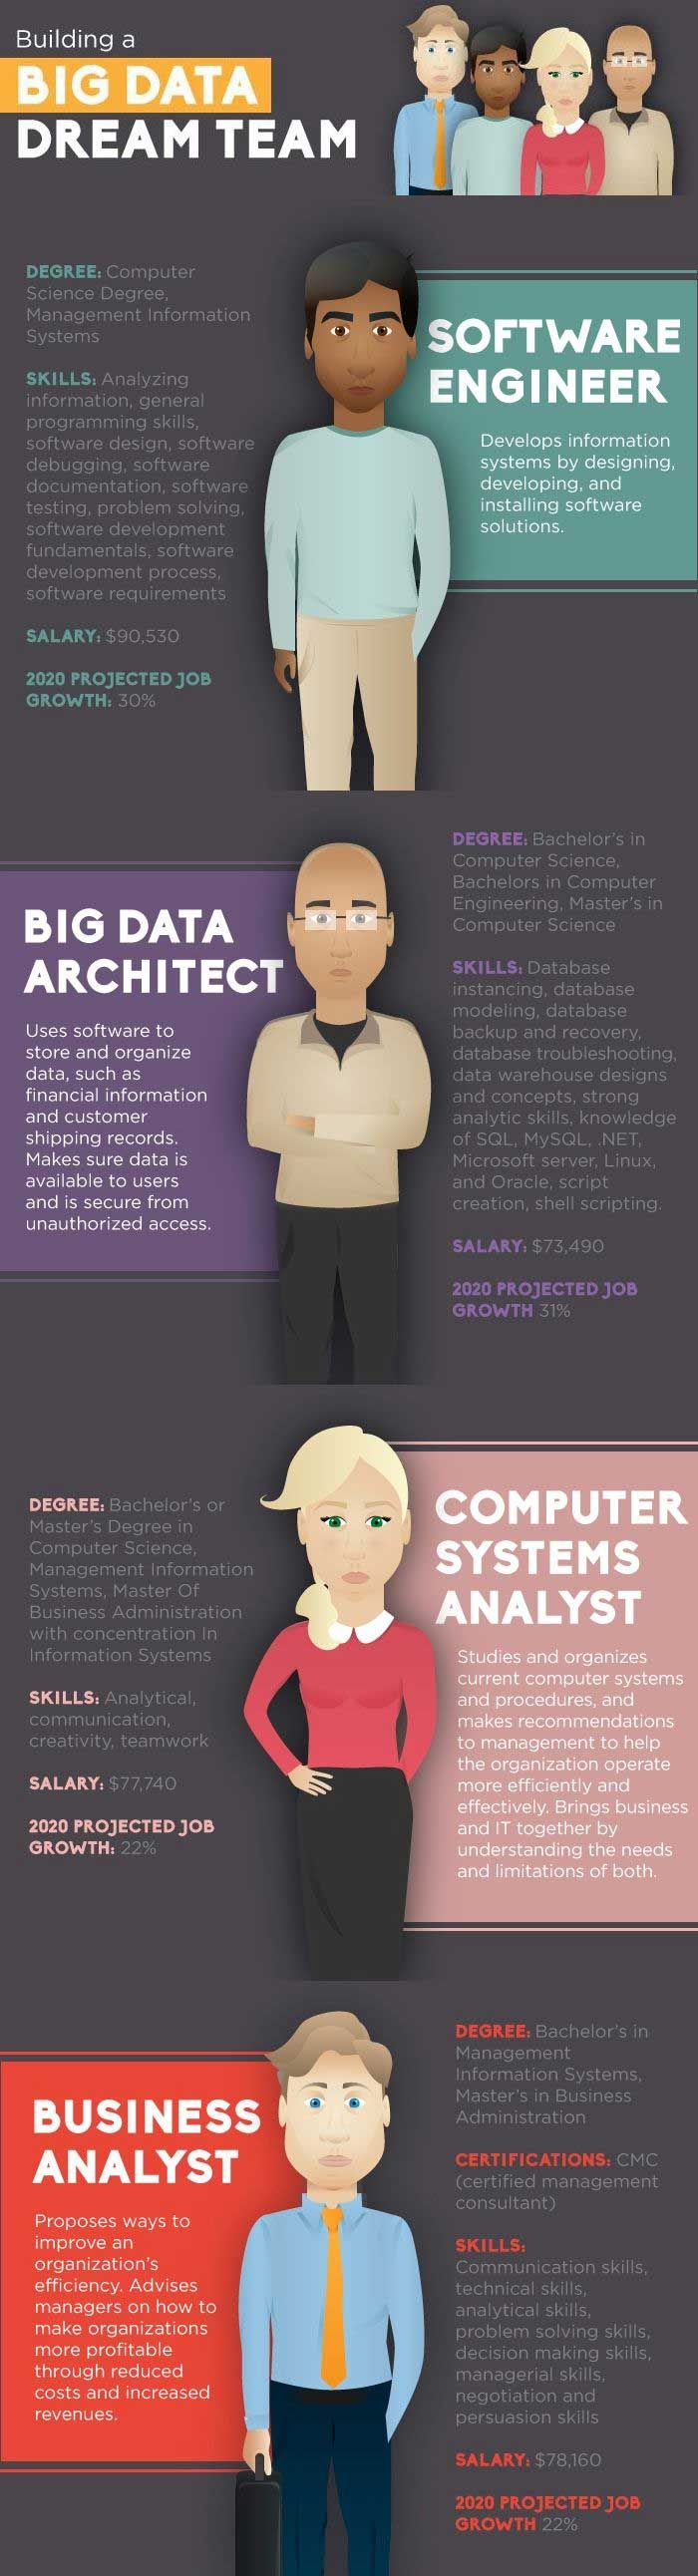 CareerVillage | What do computer engineers do